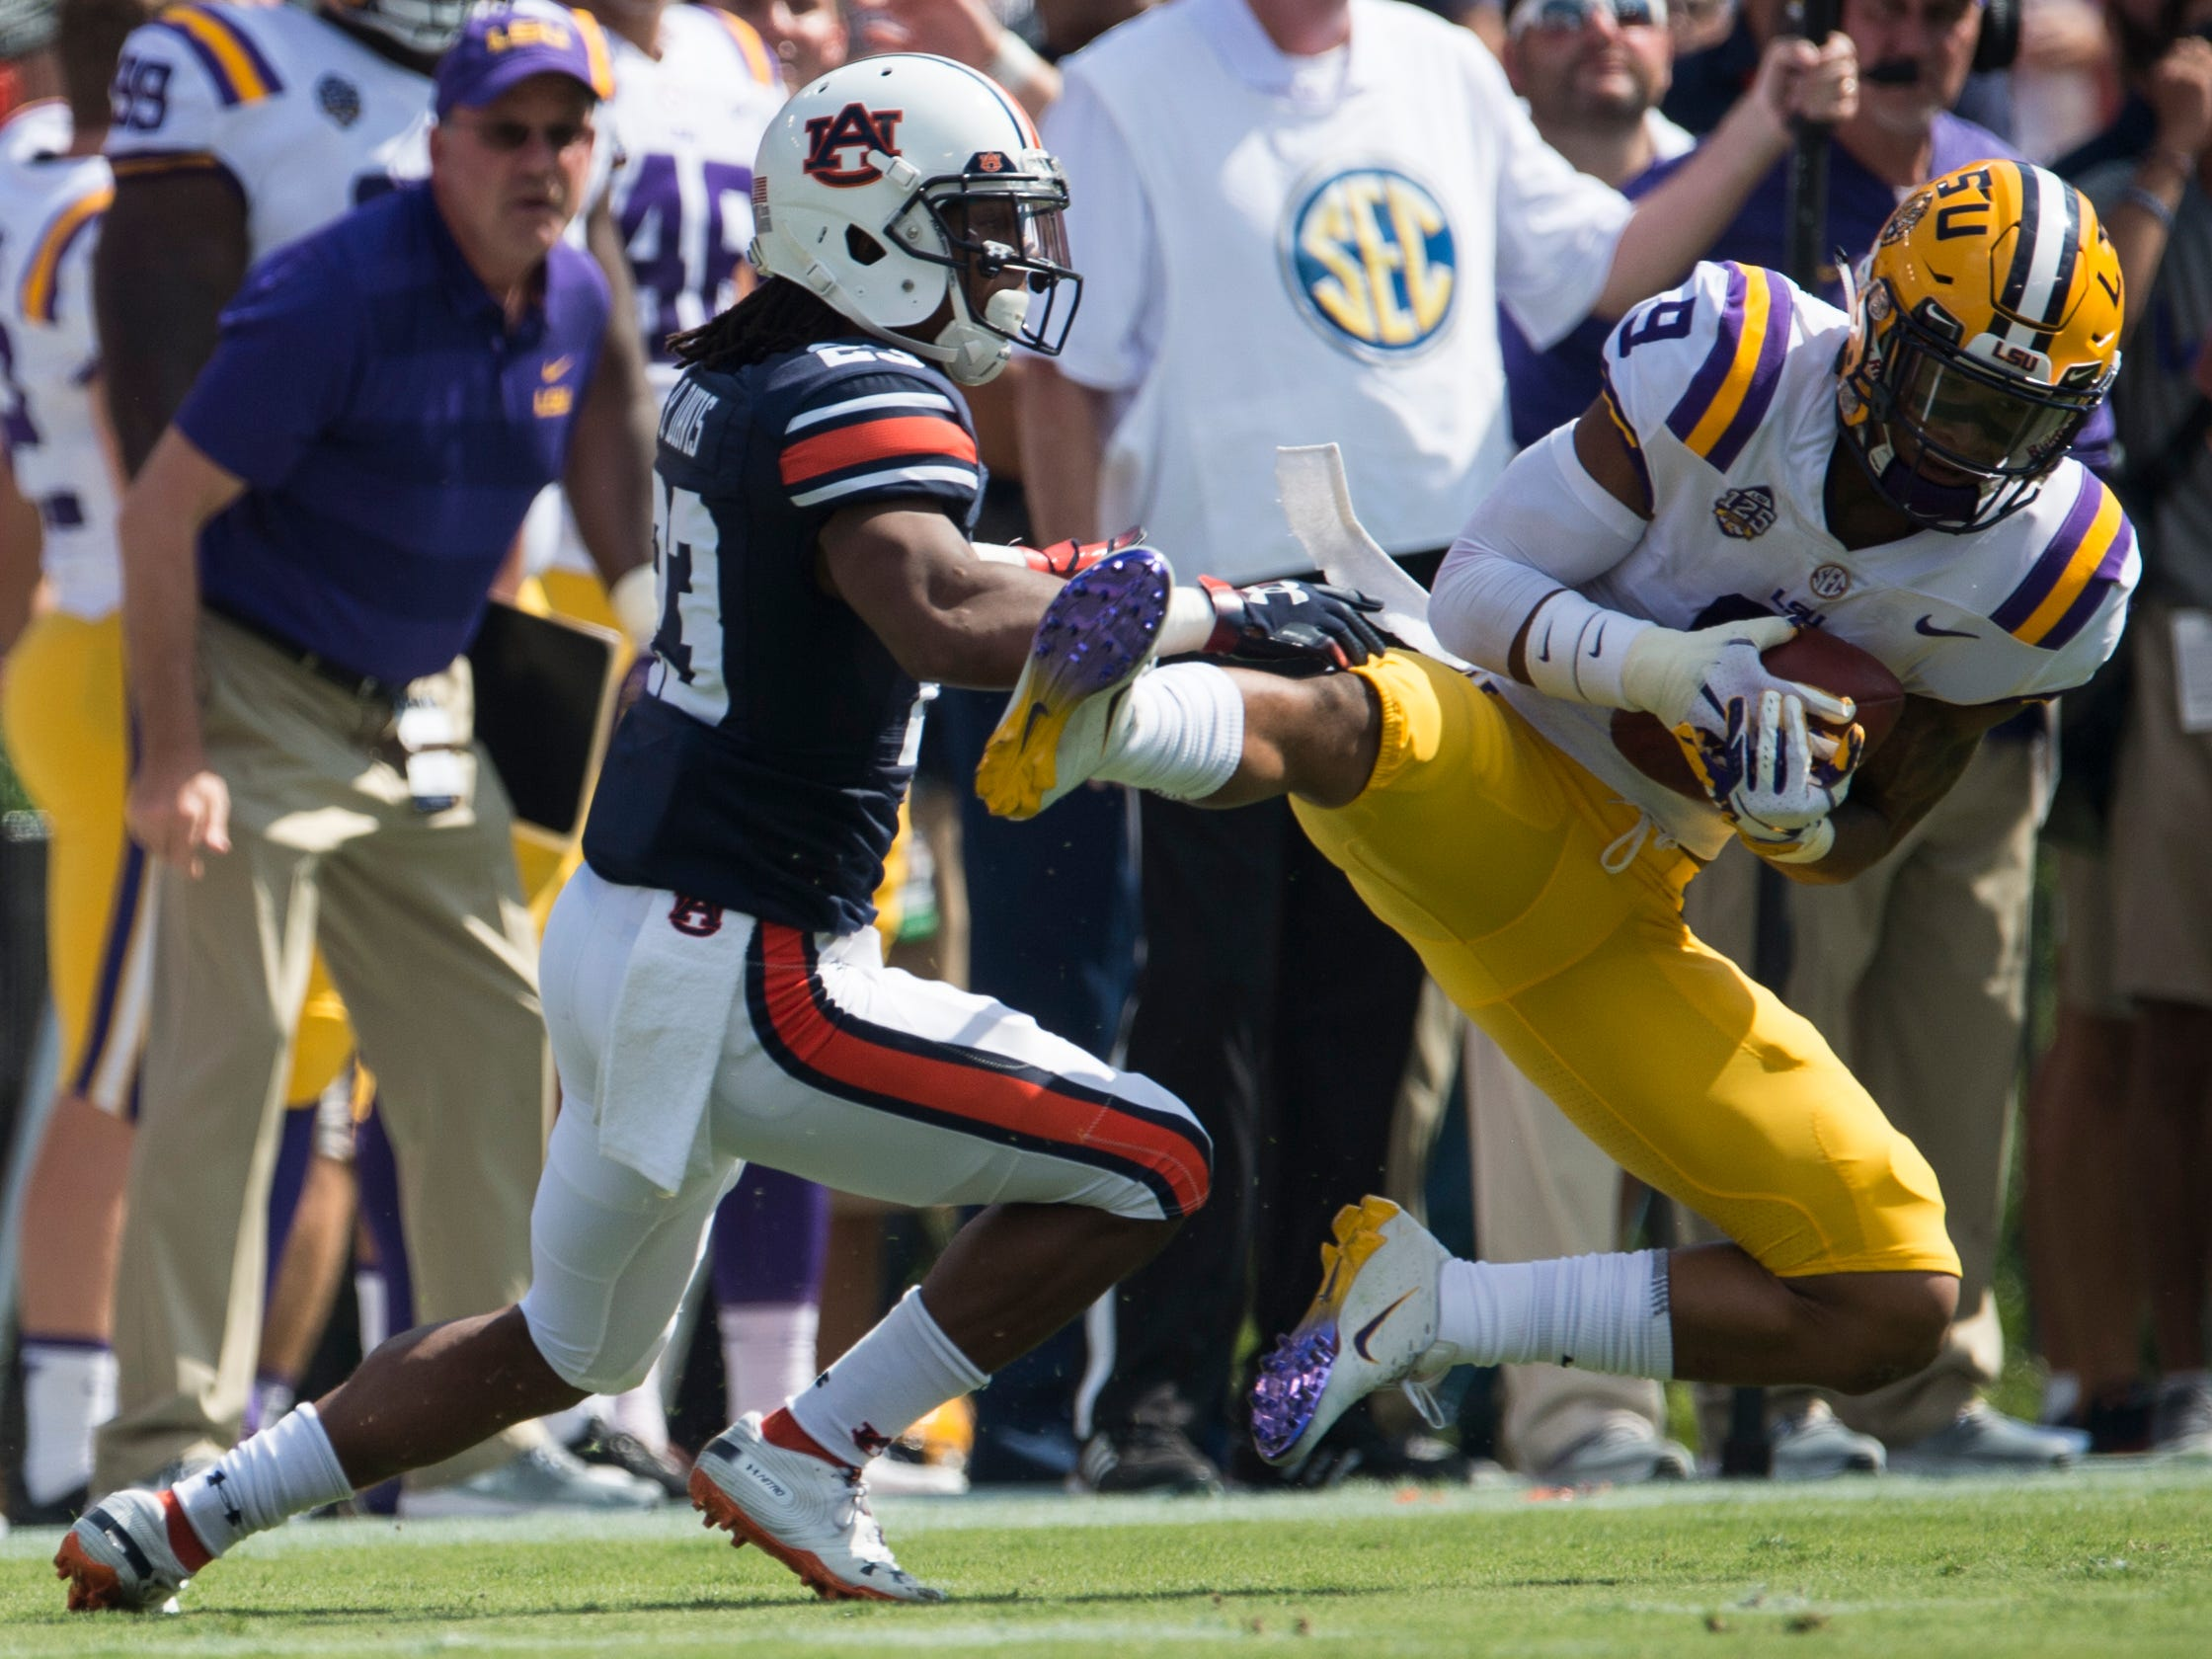 LSU's Grant Delpit (9) intercepts the ball intended for Auburn's Ryan Davis (23) at Jordan-Hare Stadium in Auburn, Ala., on Saturday, Sept. 15, 2018. Auburn leads LSU 14-10 at halftime.